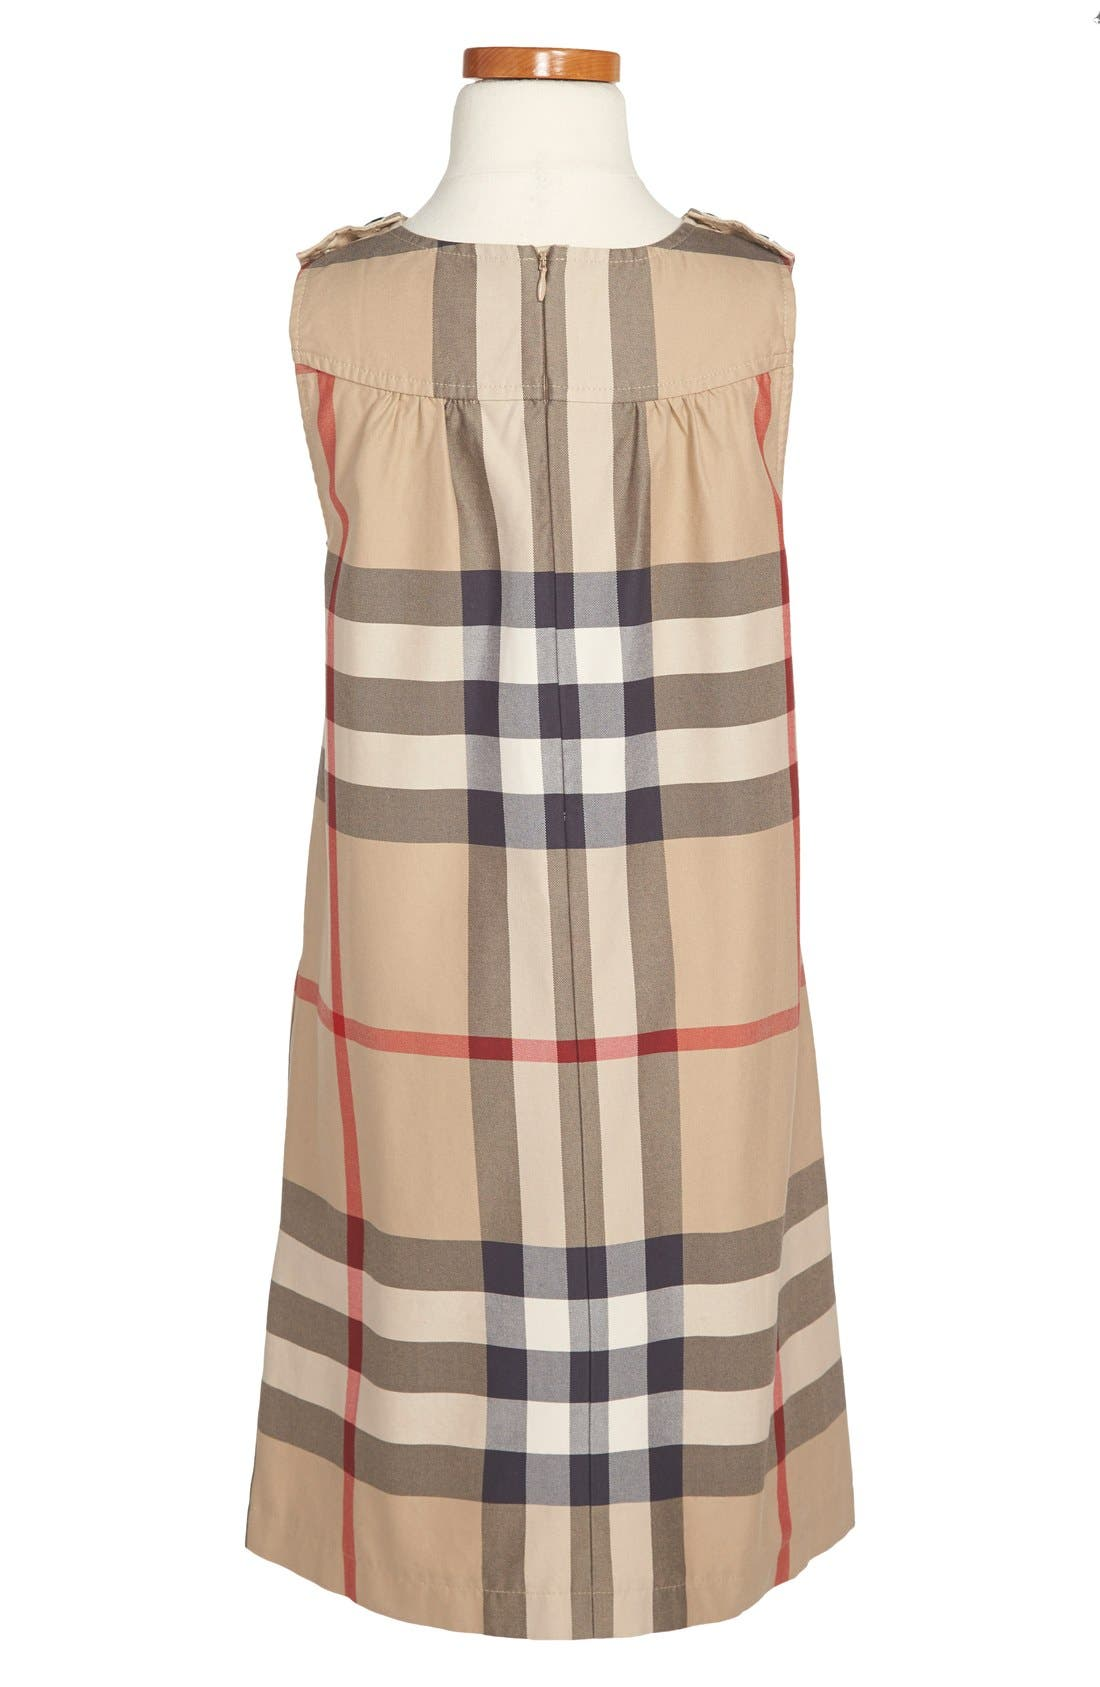 Alternate Image 2  - Burberry Check Print Dress (Little Girls & Big Girls)